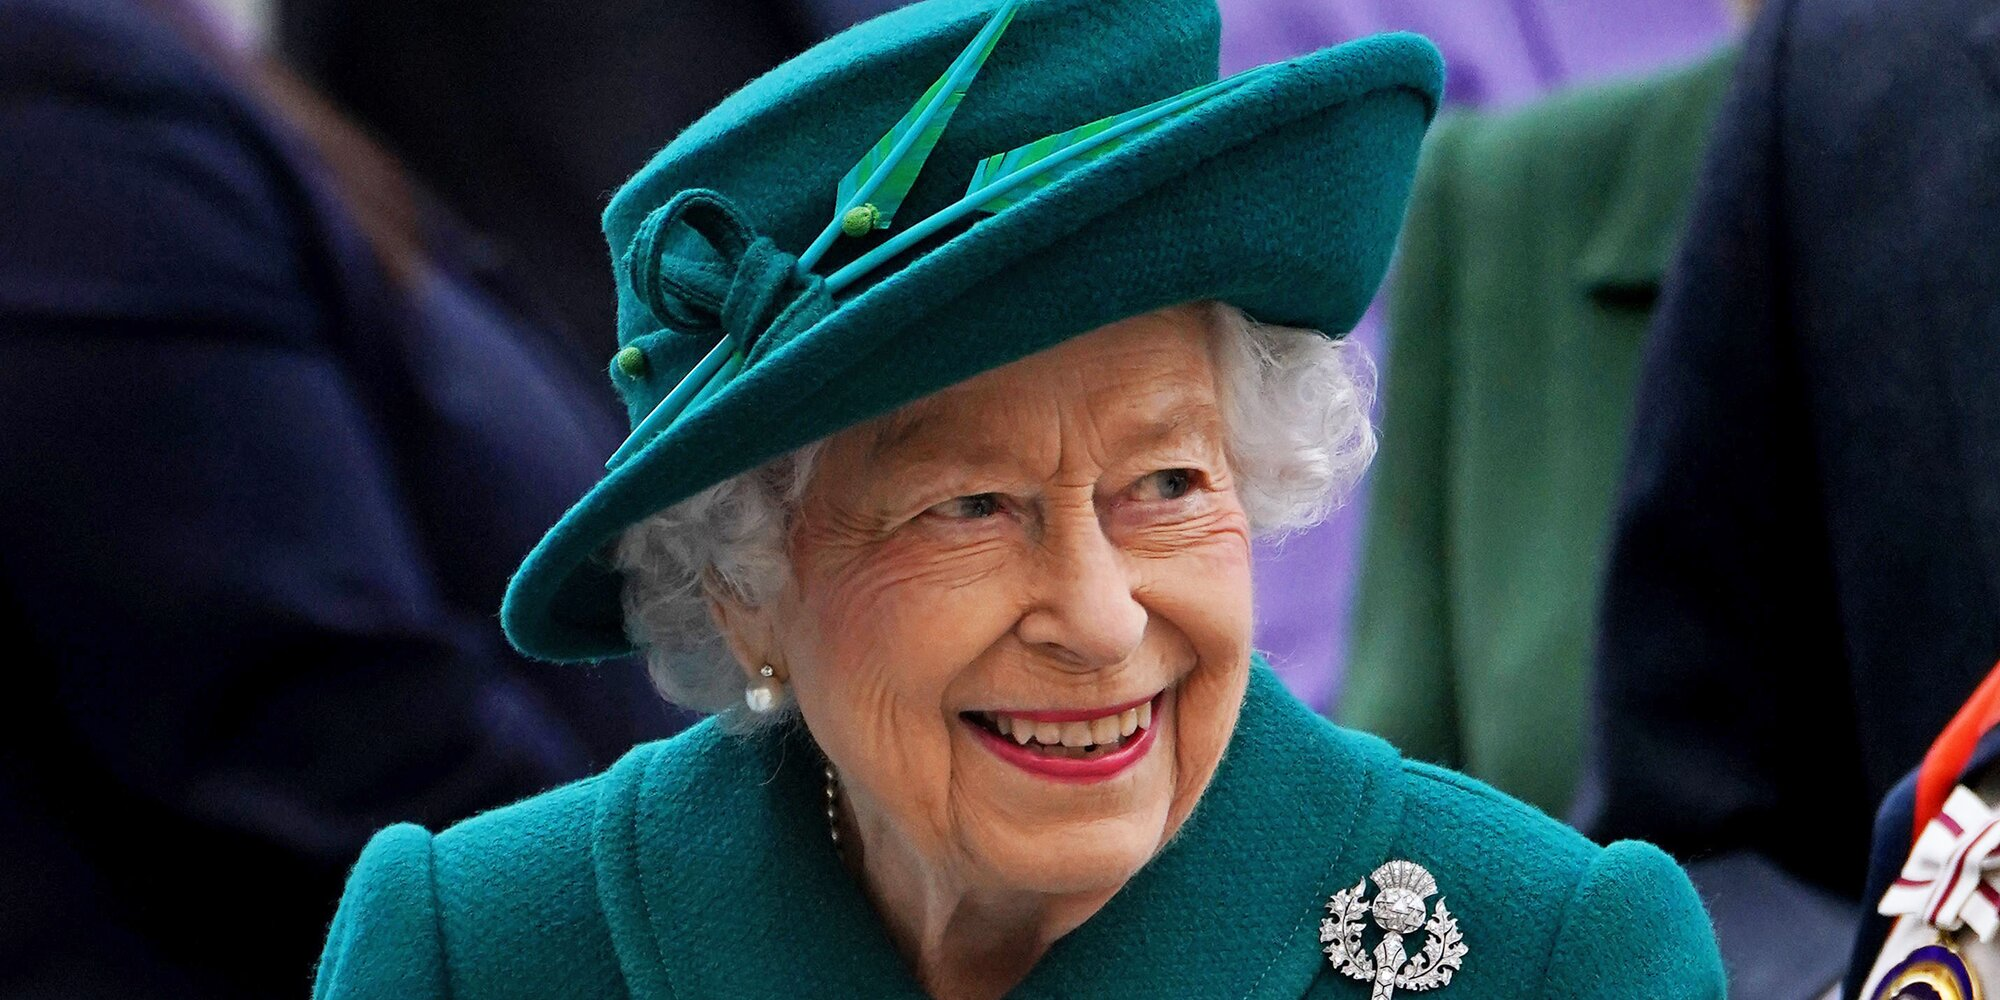 Queen Elizabeth Has Been Told to Stop Drinking, Report Claims